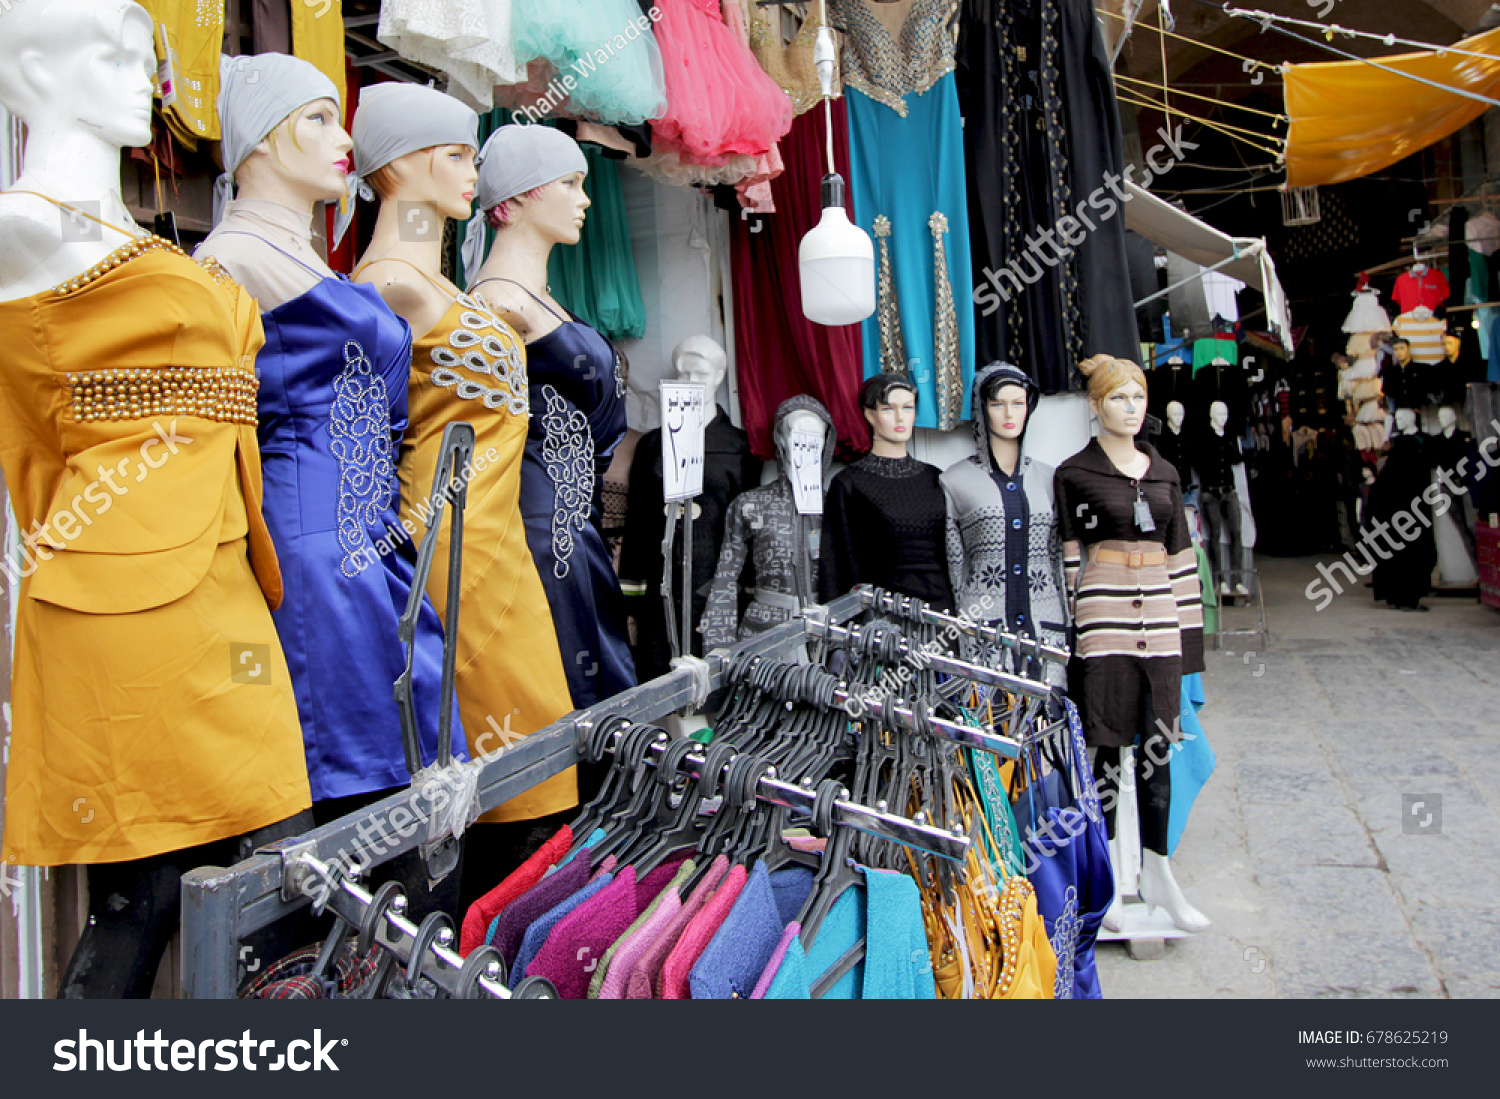 fba610ef0b0d Iran October 2016 Colorful Modern Style Stock Photo (Edit Now ...